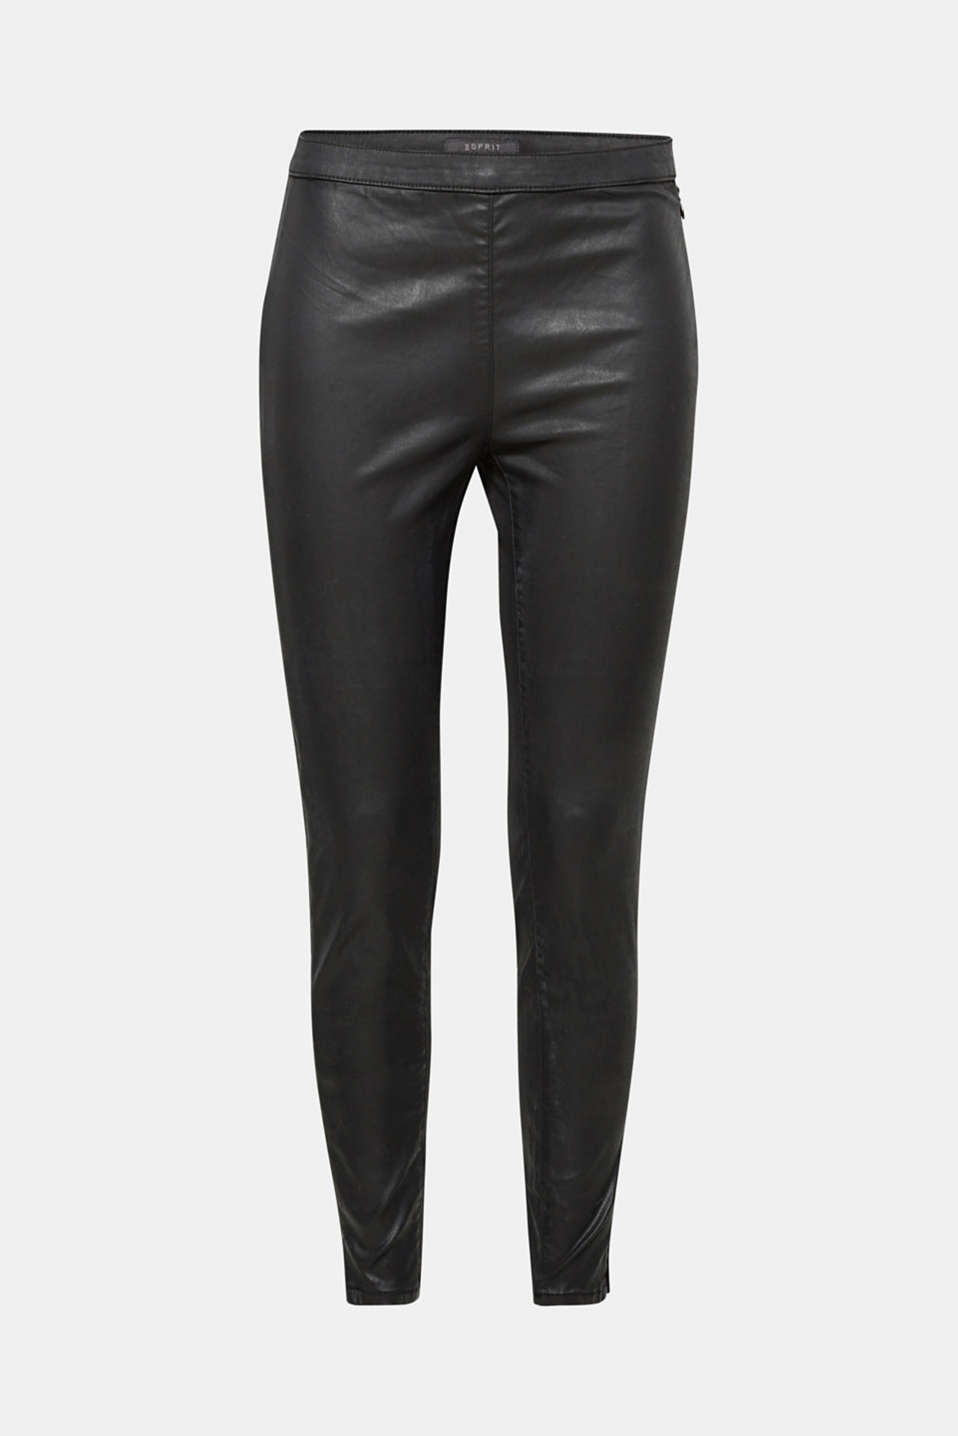 These comfortable stretchy trousers with stylish coating and a side zip give your looks a cool kick!